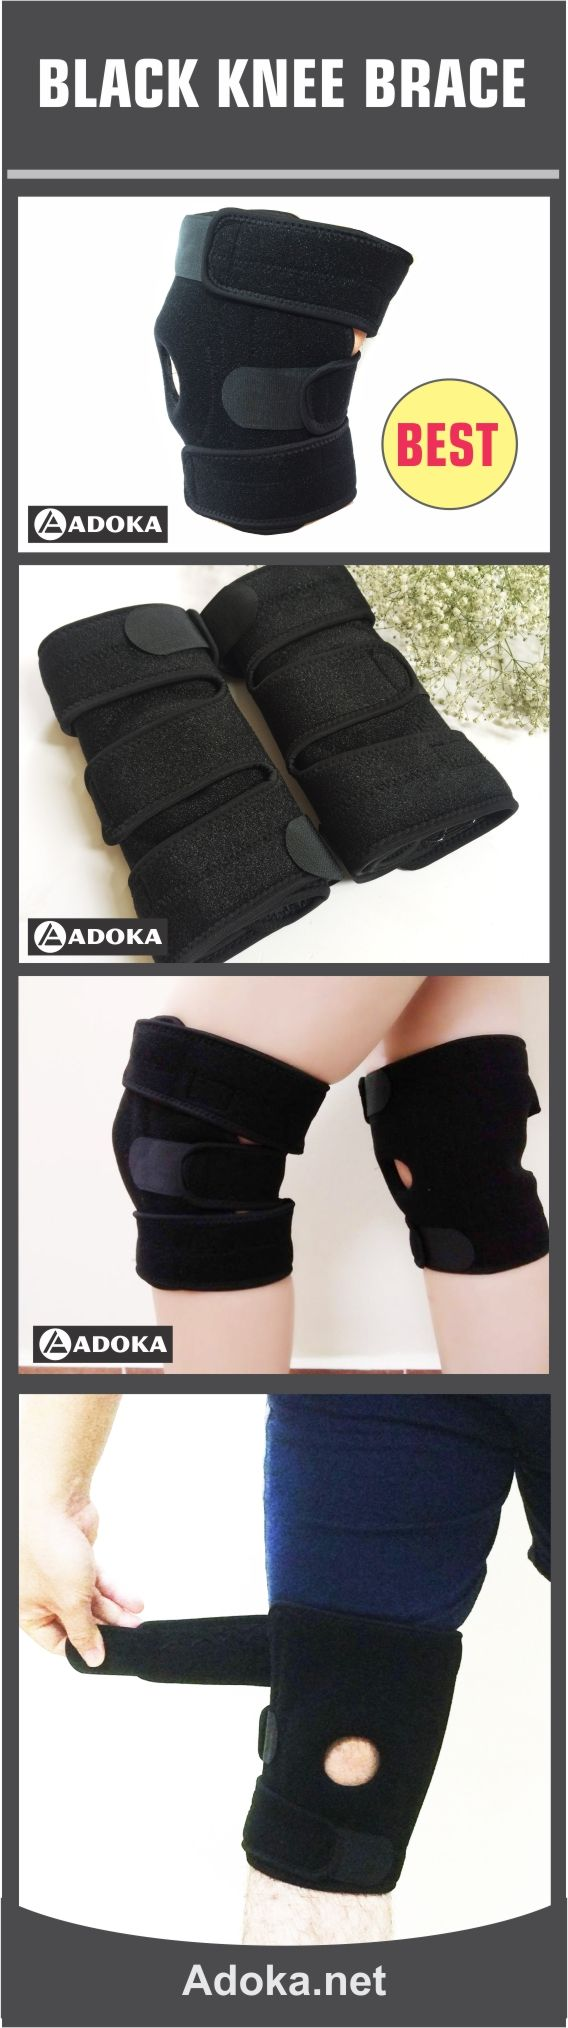 Knee Support, Black knee brace support, Sports Knee Brace, Knee Brace Sleeve, Knee Brace for women and Men